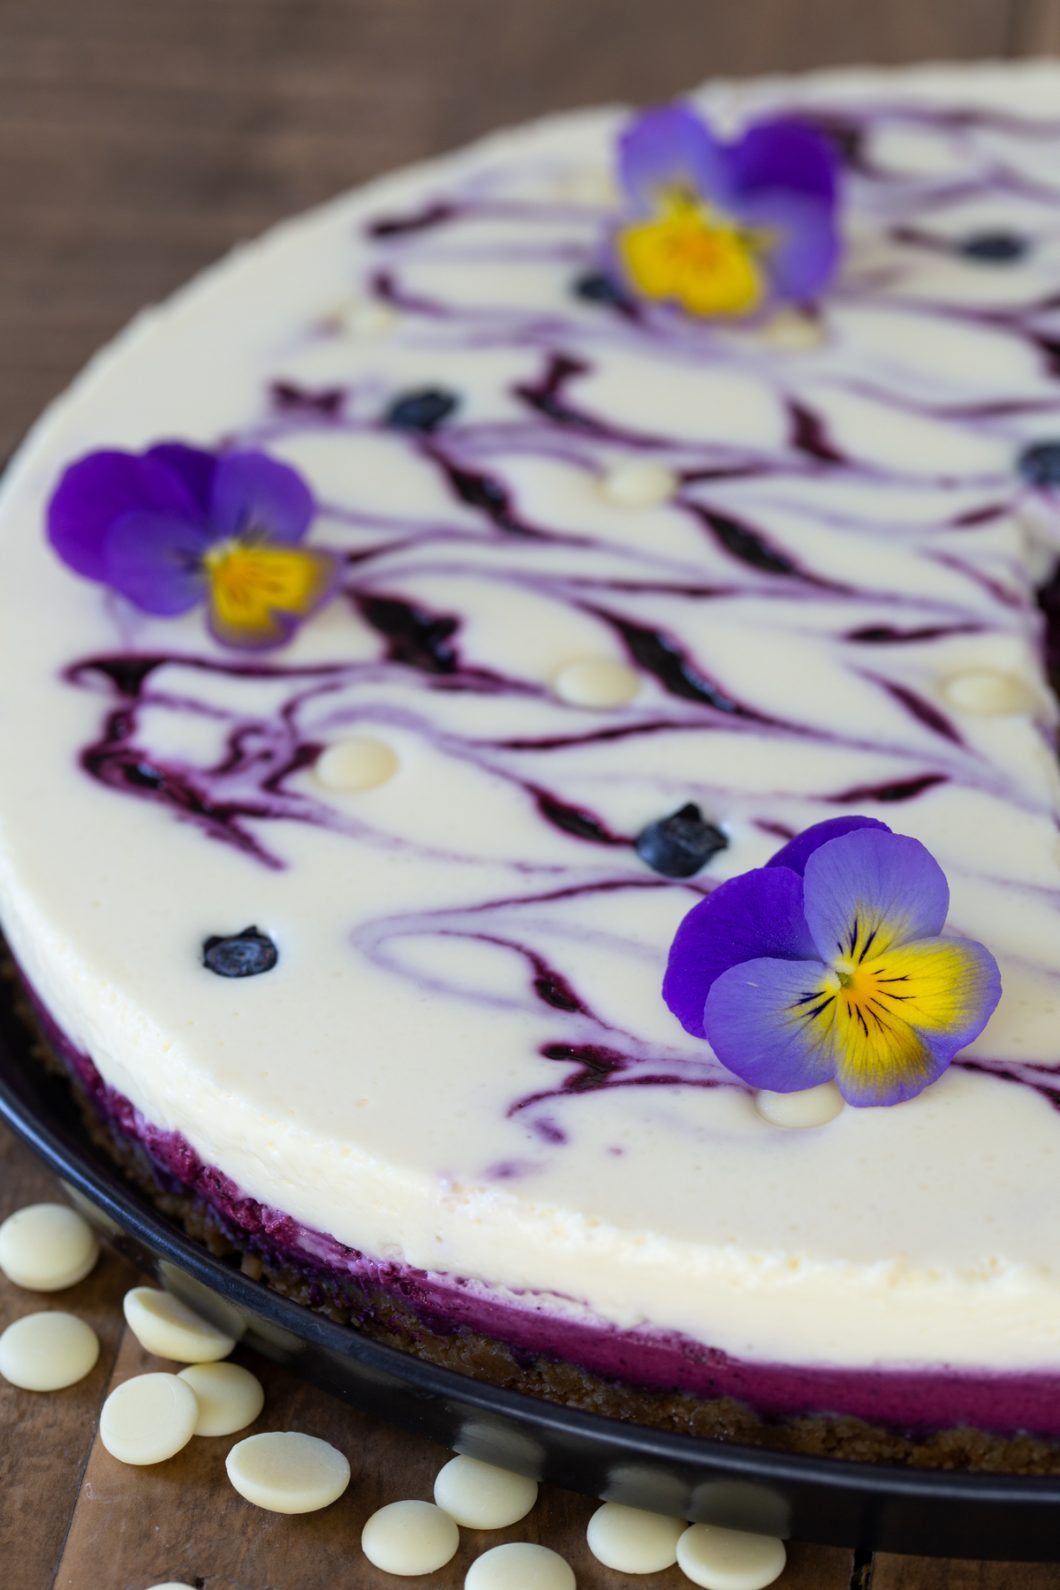 No-bake blueberry white chocolate cheesecake topped with pansies.